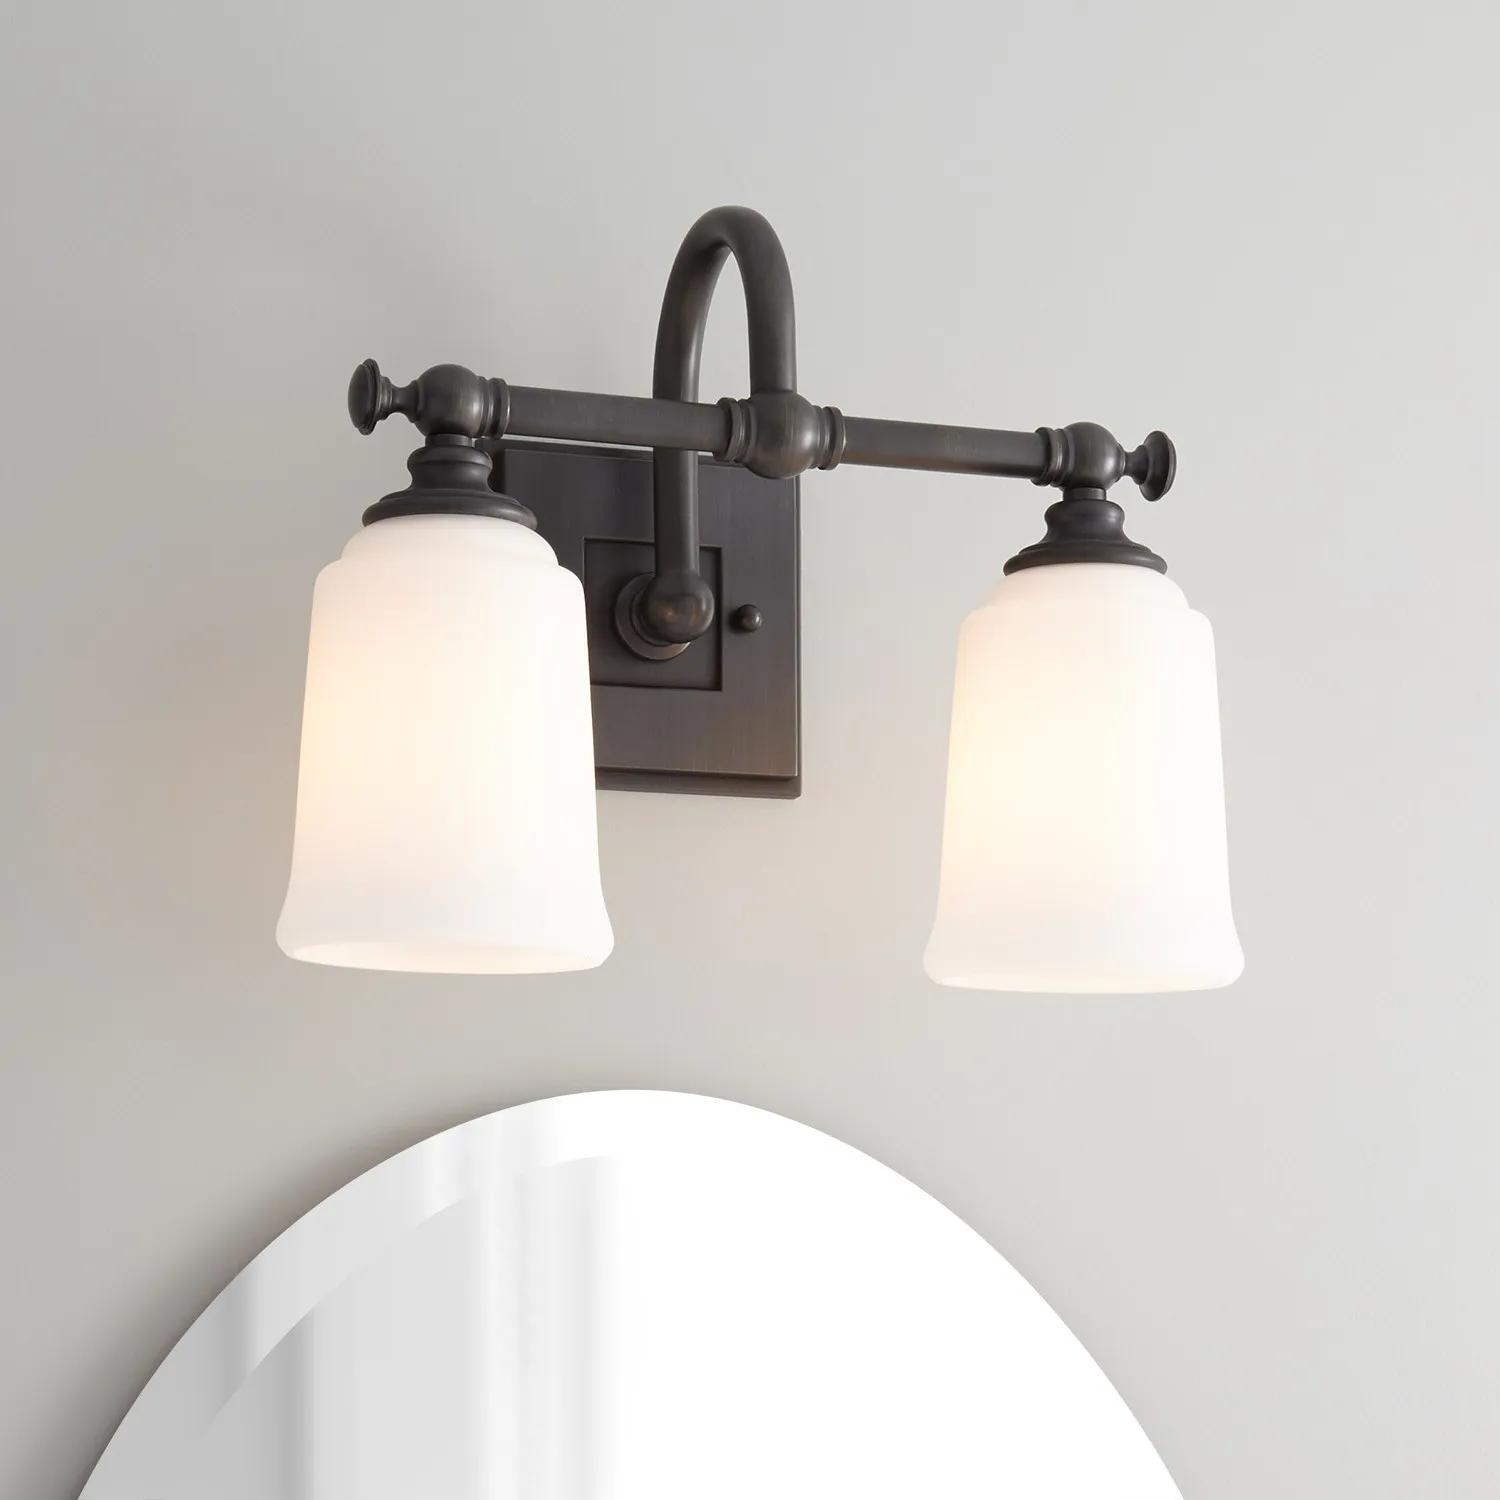 Antonio 2 Light Vanity Light Frosted Glass Bathroom Vanity Lighting Lighting